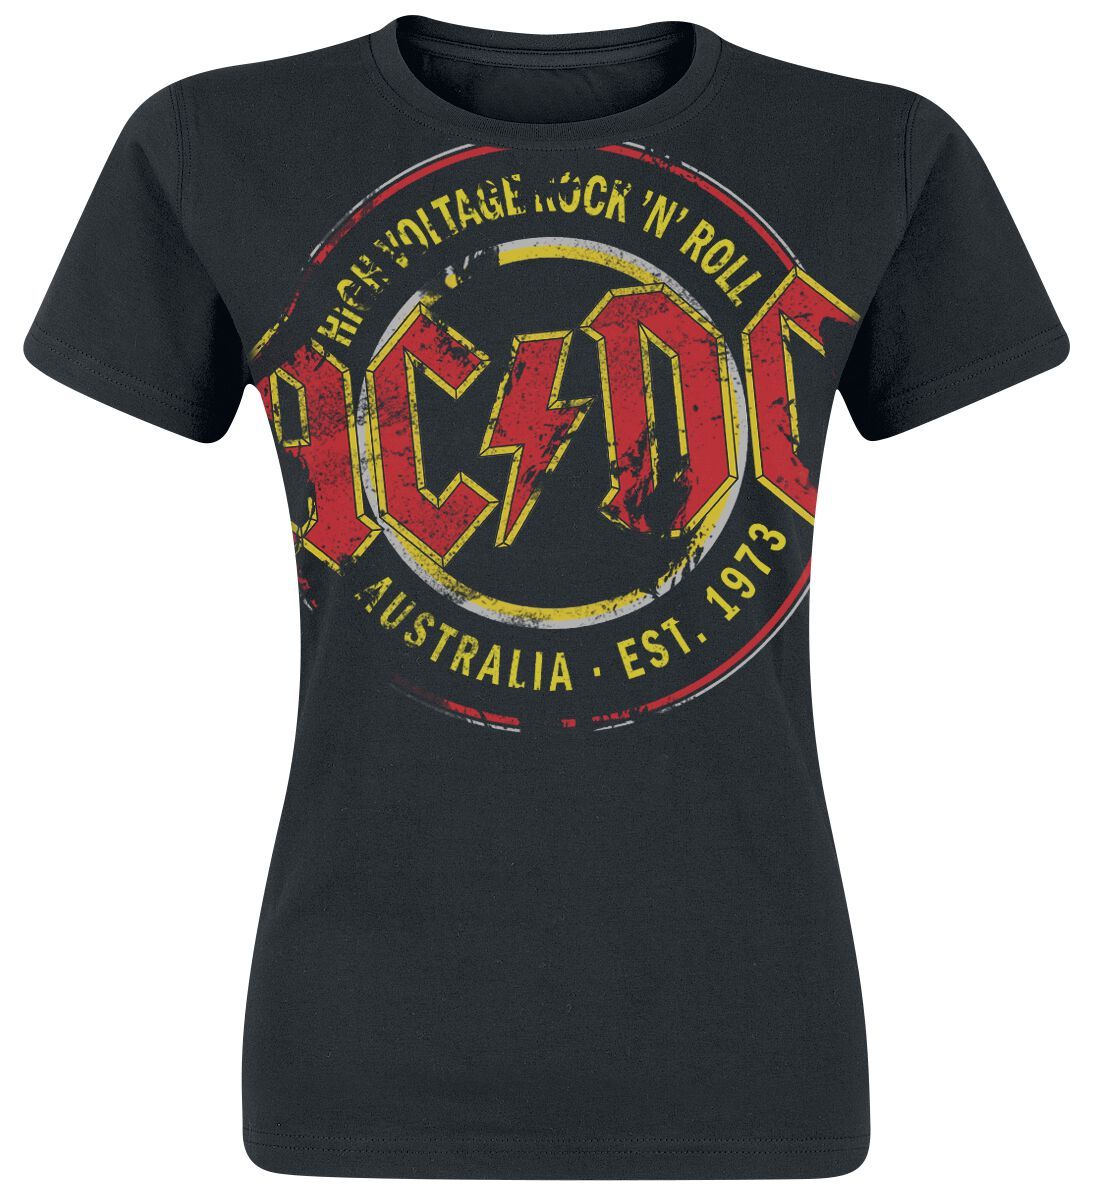 Image of   AC/DC High Voltage - Australia Est. 1973 Vintage Girlie trøje sort